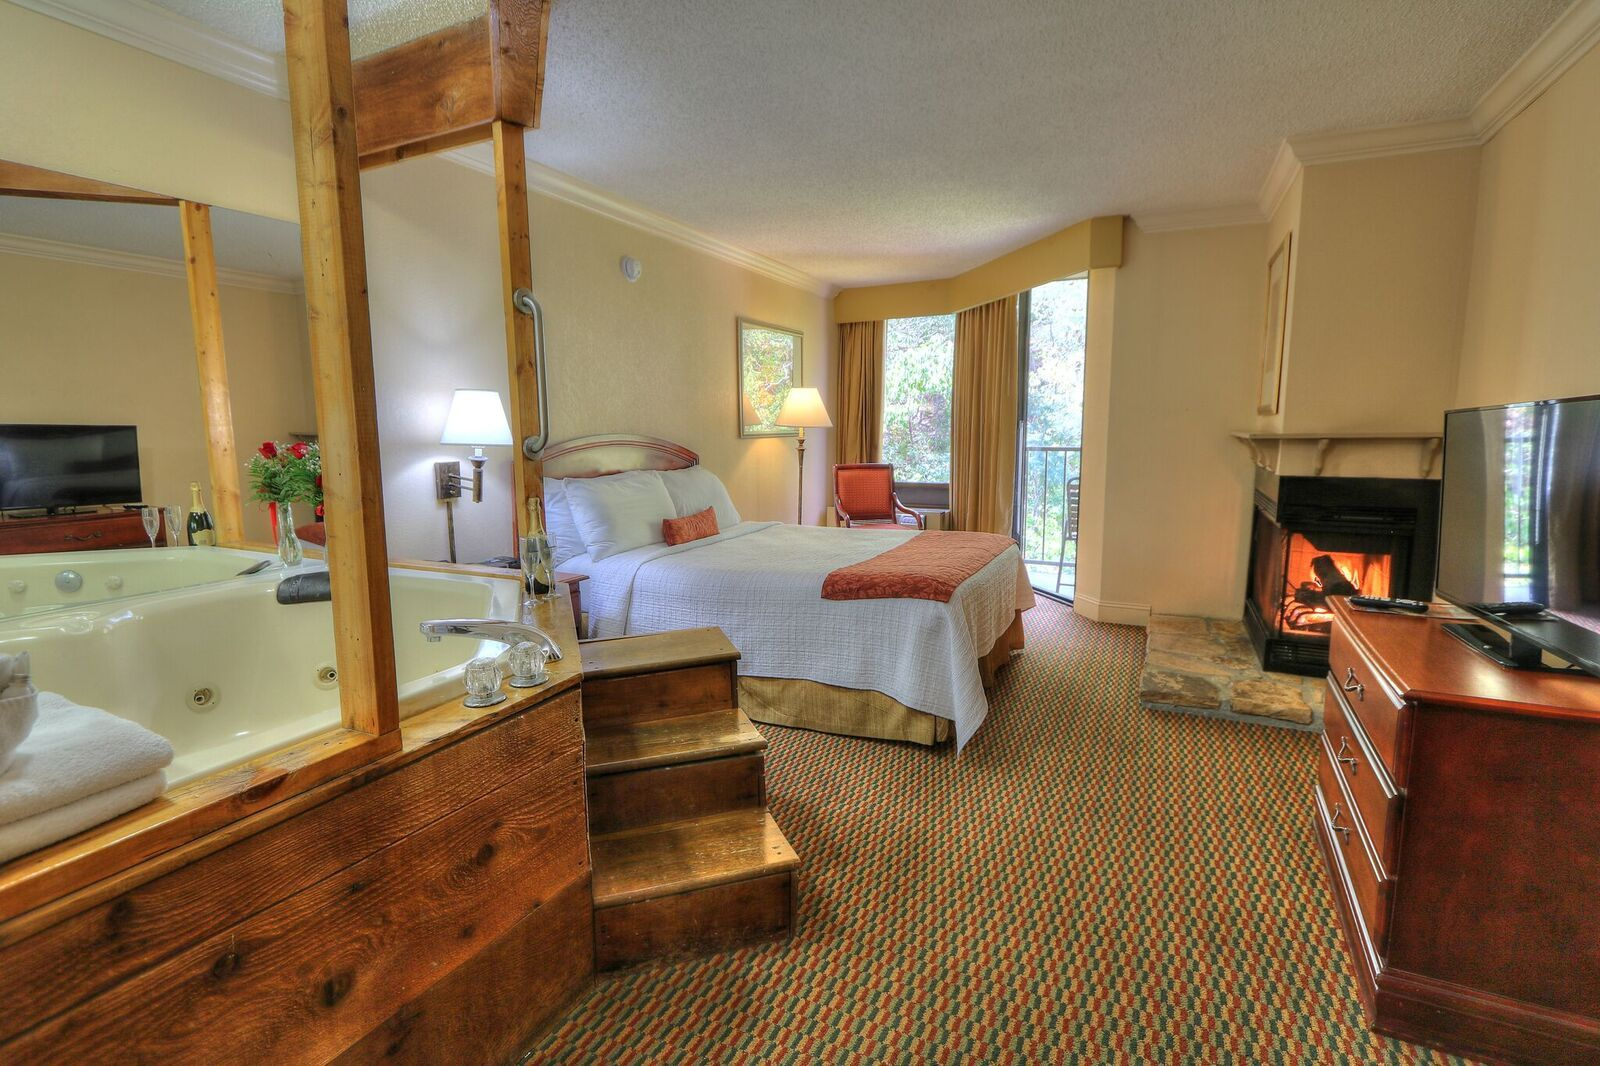 Book A Jacuzzi Room At The Edgewater Hotel In Gatlinburg Tn Jacuzzi Room Edgewater Hotel Jacuzzi